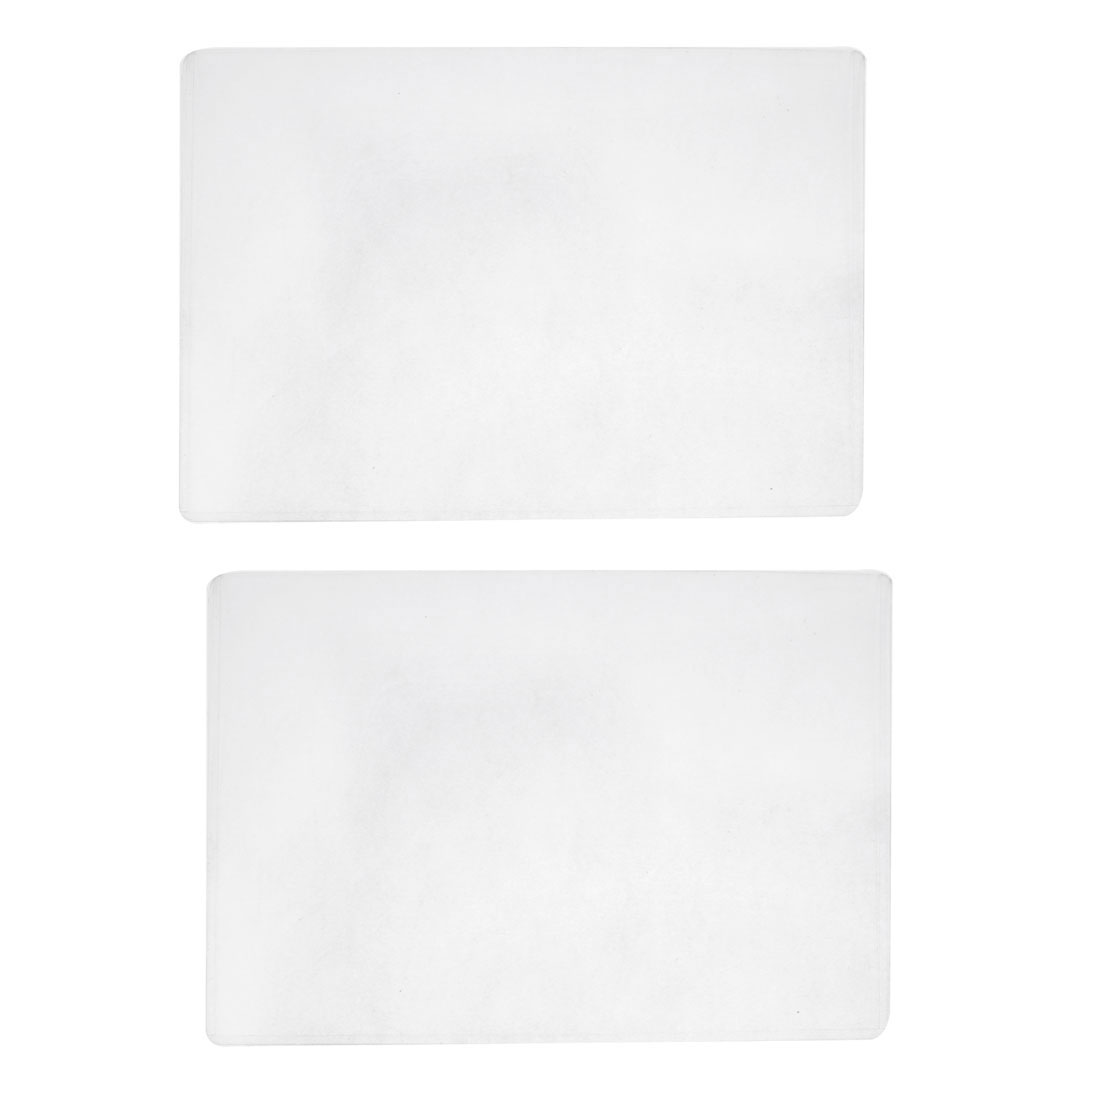 Clear Plastic Name ID Card Paper File Holder Case Protector Cover 2pcs